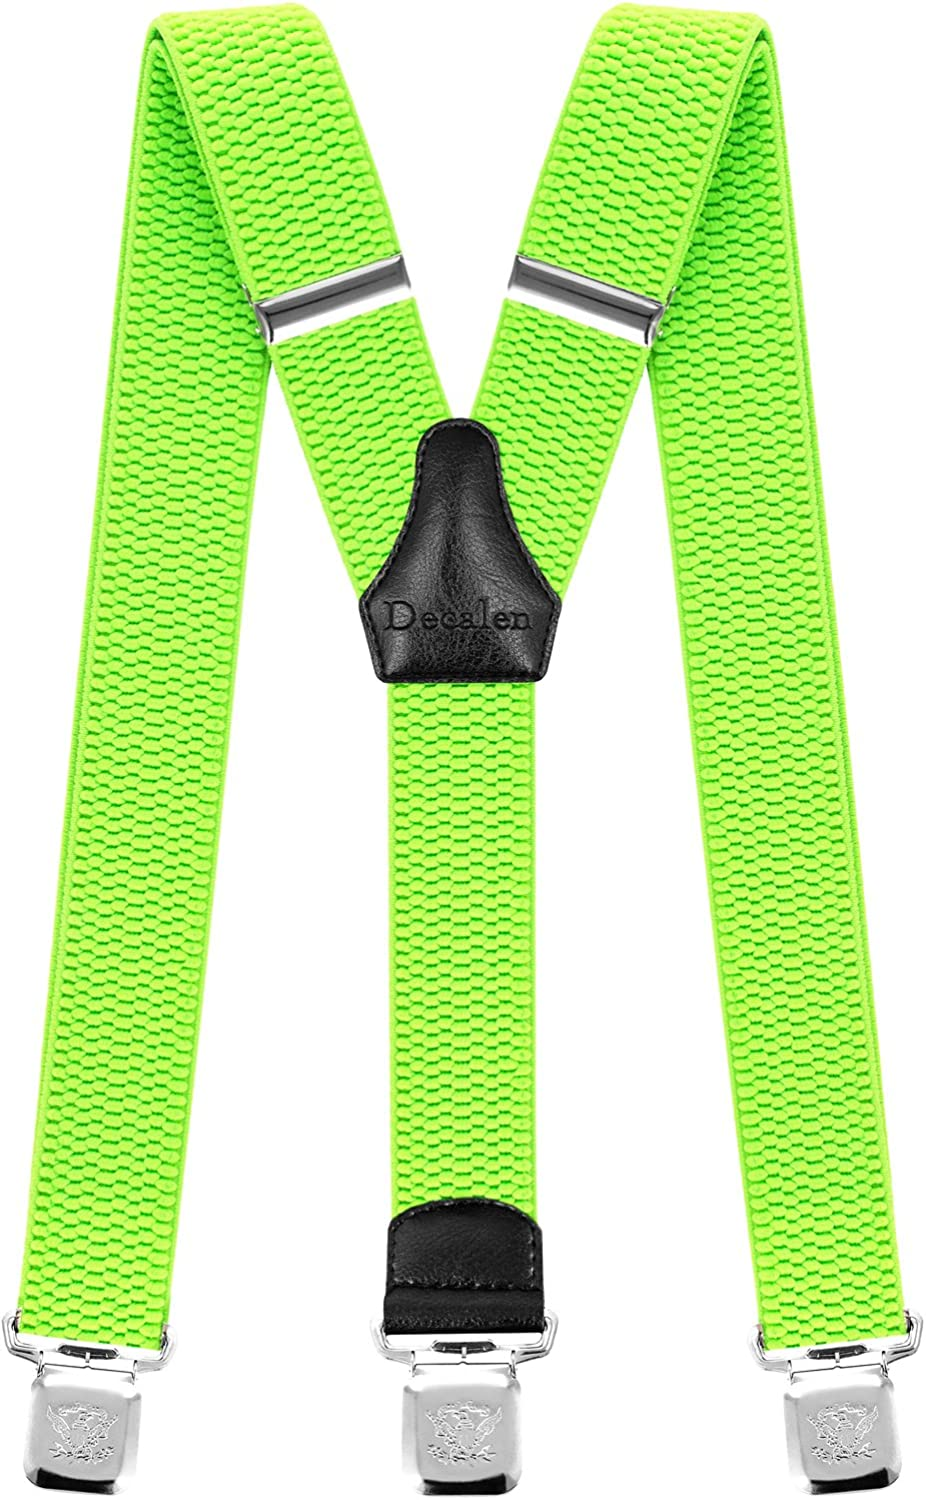 Decalen Mens Braces with Very Strong Clips Heavy Duty Suspenders One Size Fits All Wide Adjustable and Elastic Y Style Green Neon